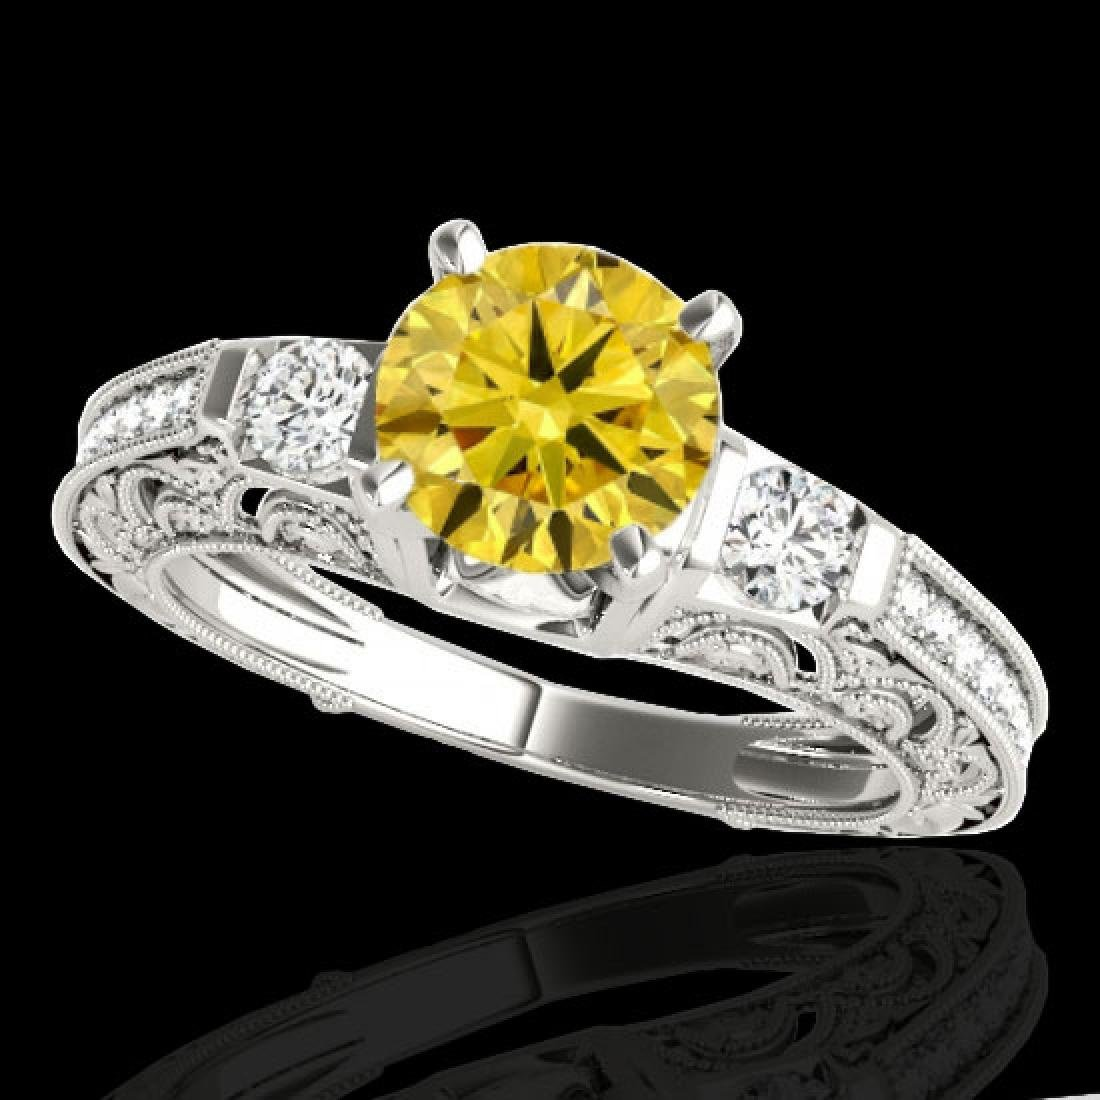 1.38 CTW Certified Si Intense Yellow Diamond Solitaire